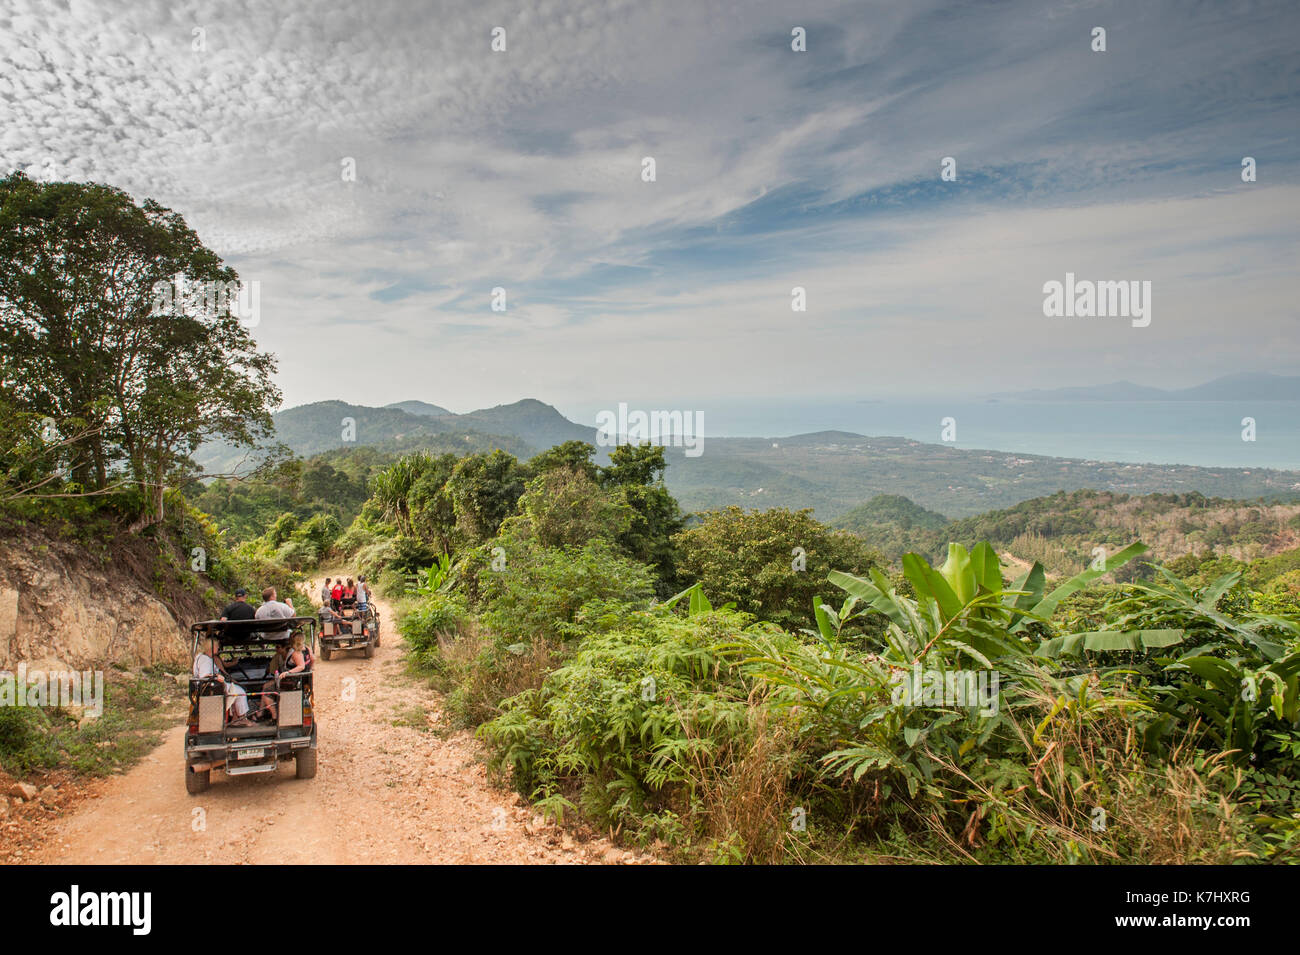 Jeeps full of tourists on the tracks through the island of Koh Samui, Thailand - Stock Image